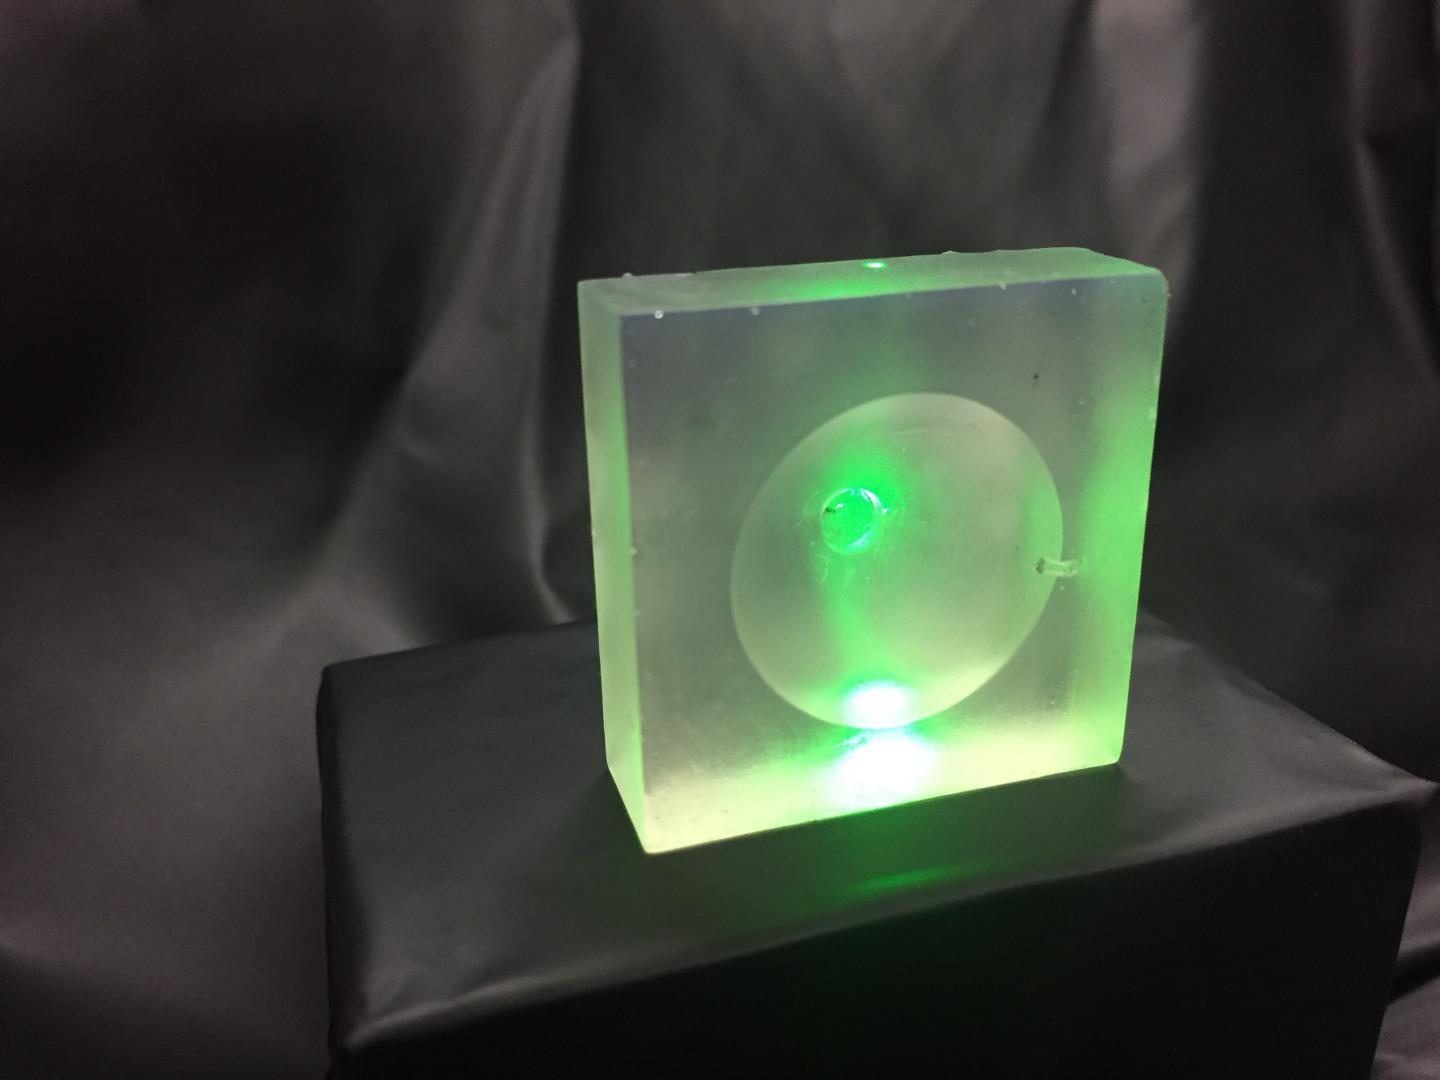 The 3D printed lenses generate enhanced ultrasound or photoacoustic waves which current ultrasound machines are unable to do